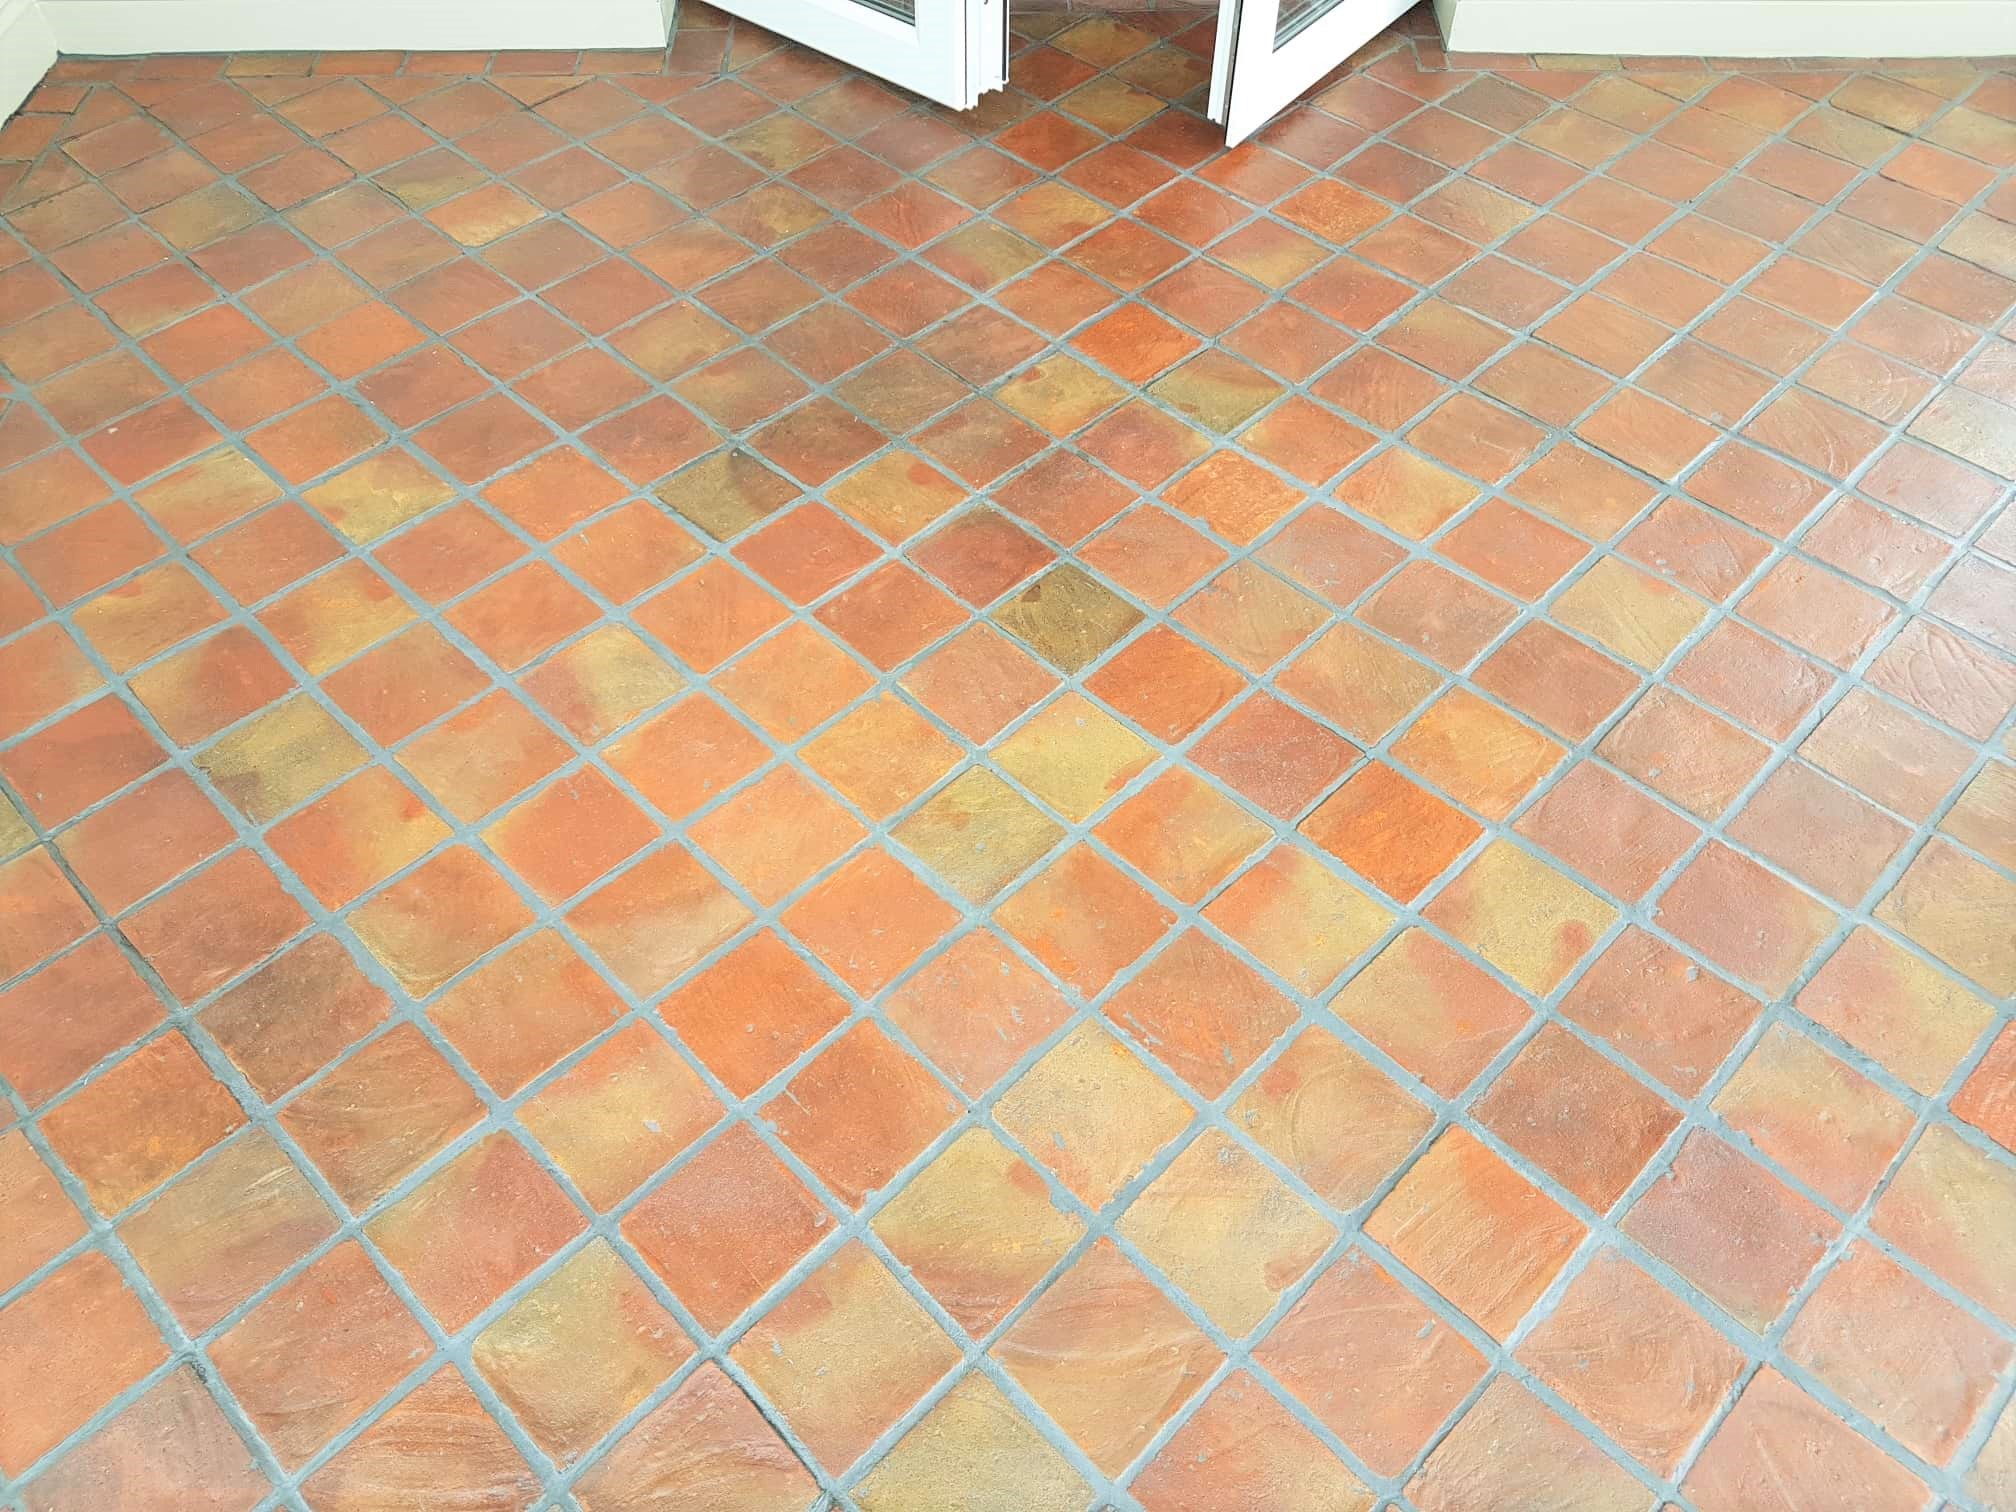 Terracotta Tiled Conservatory Floor After Cleaning